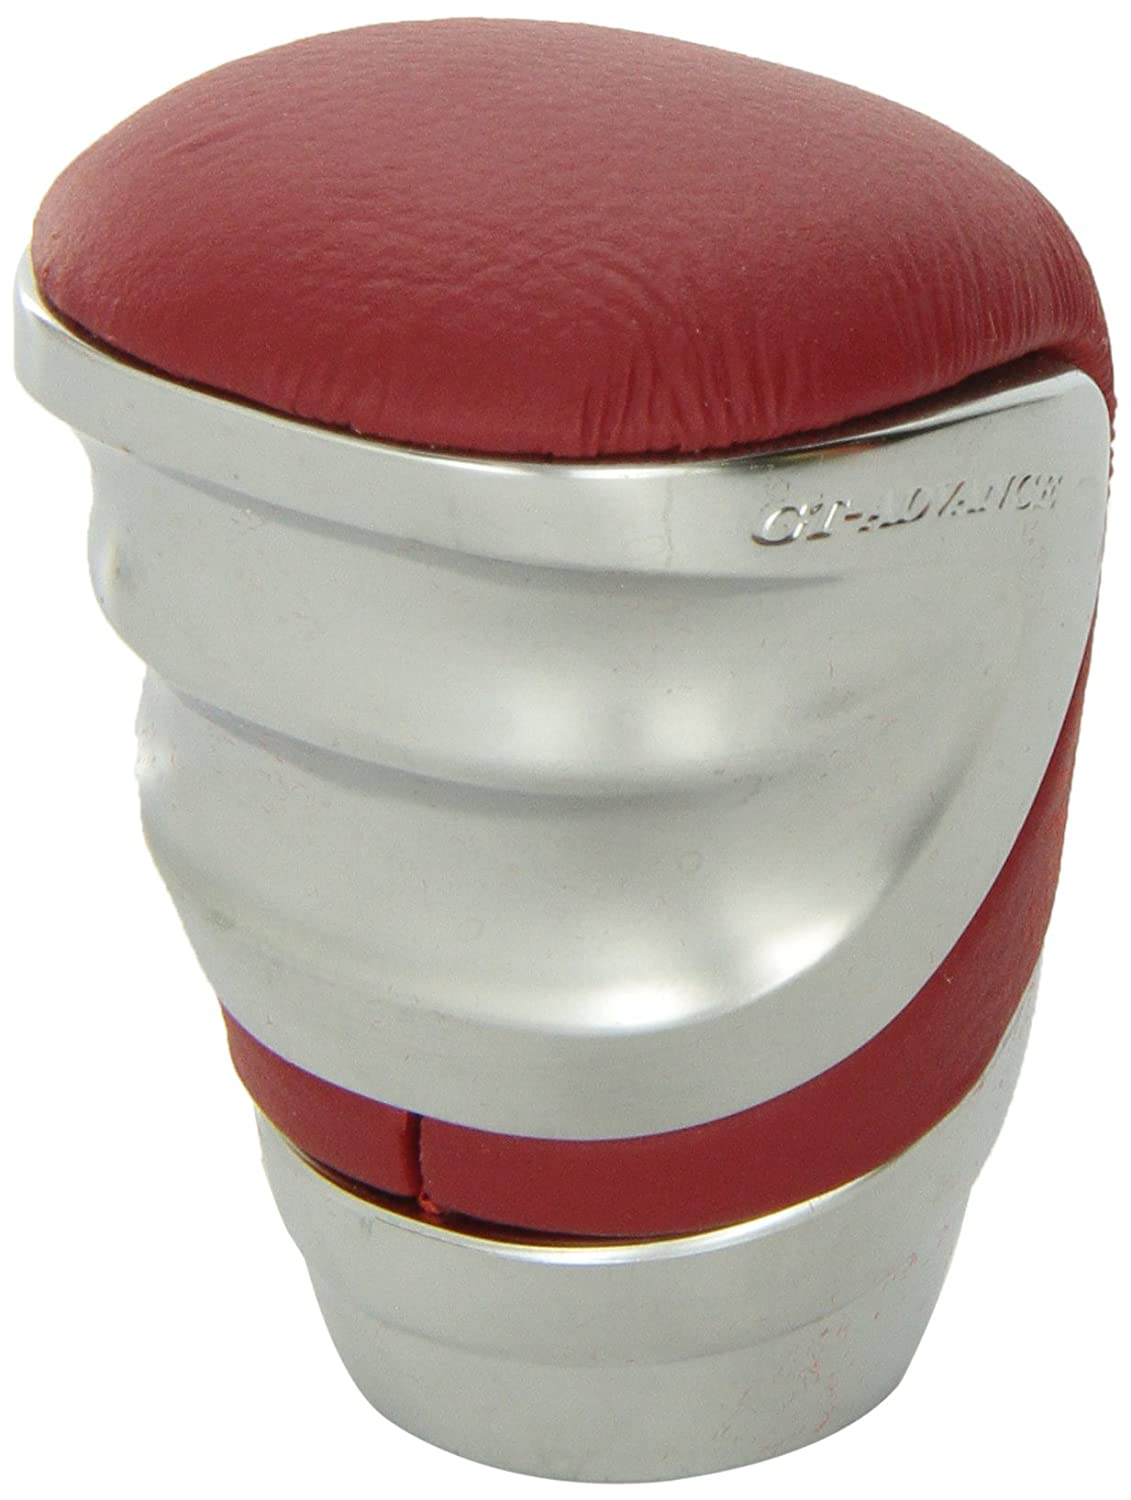 Pack of 1 Car Mate Razo RA96REA GT Advance Red Leather Short Shift Knob